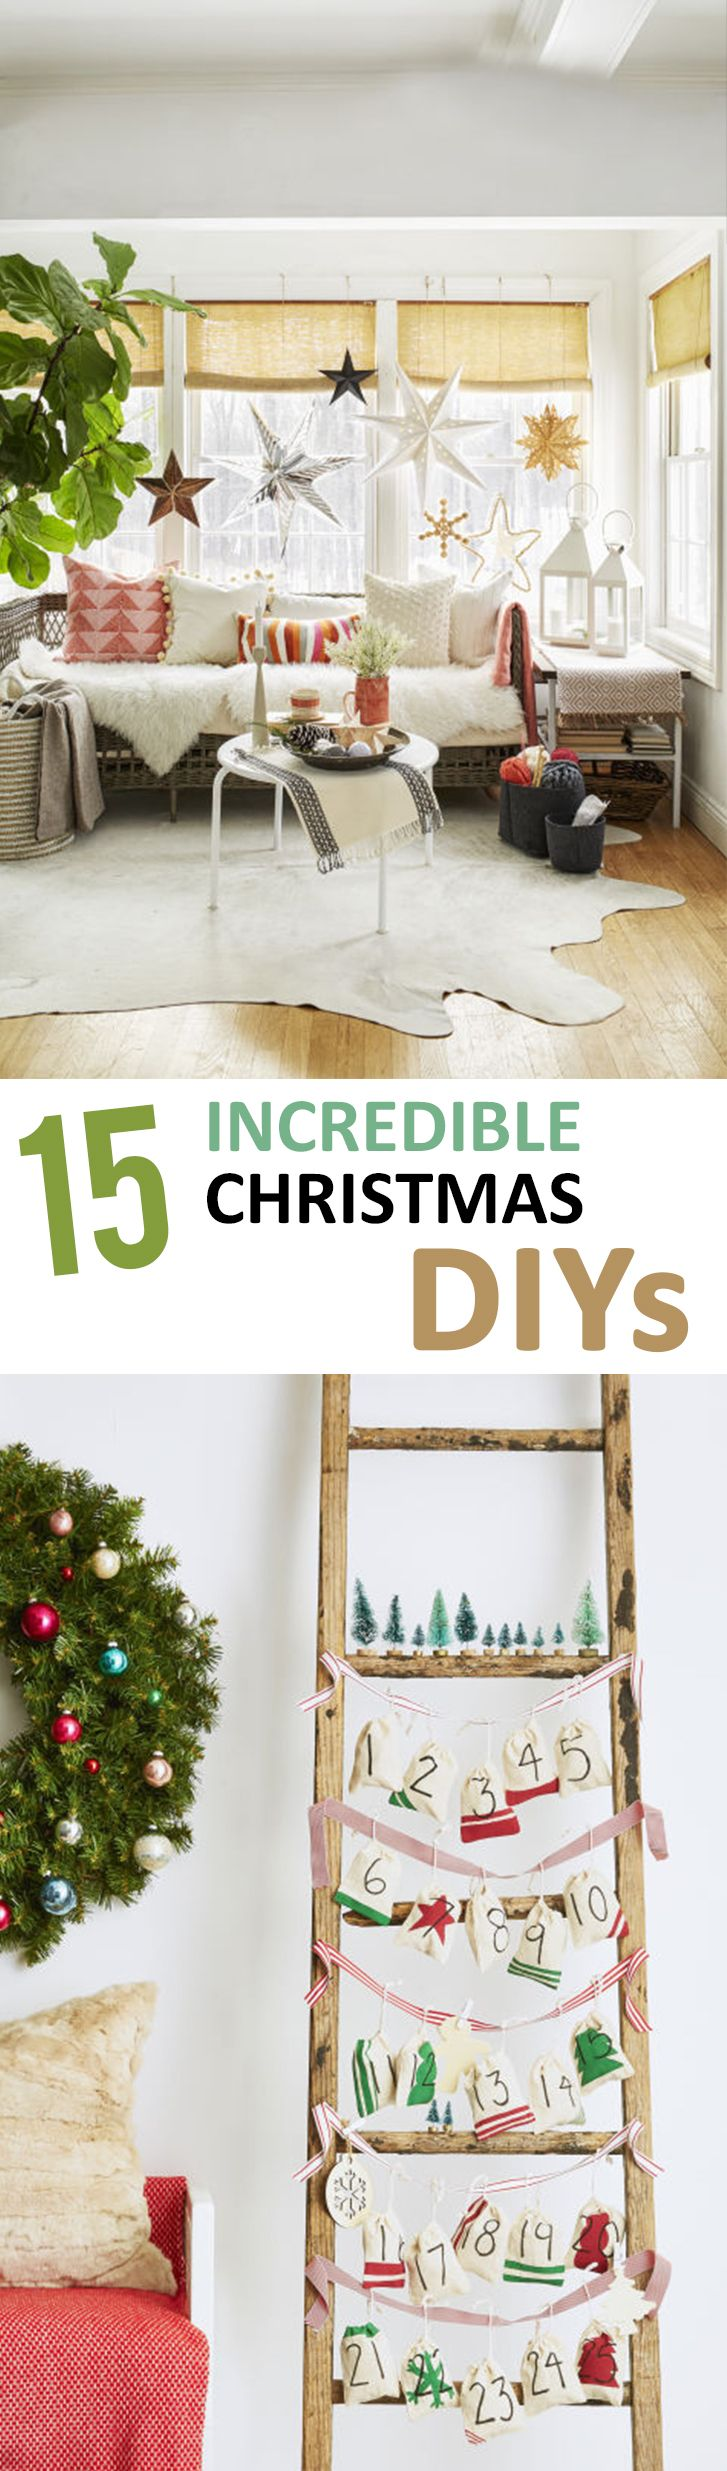 10544 best holiday fun images on pinterest popular pins 15 incredible christmas diys solutioingenieria Choice Image